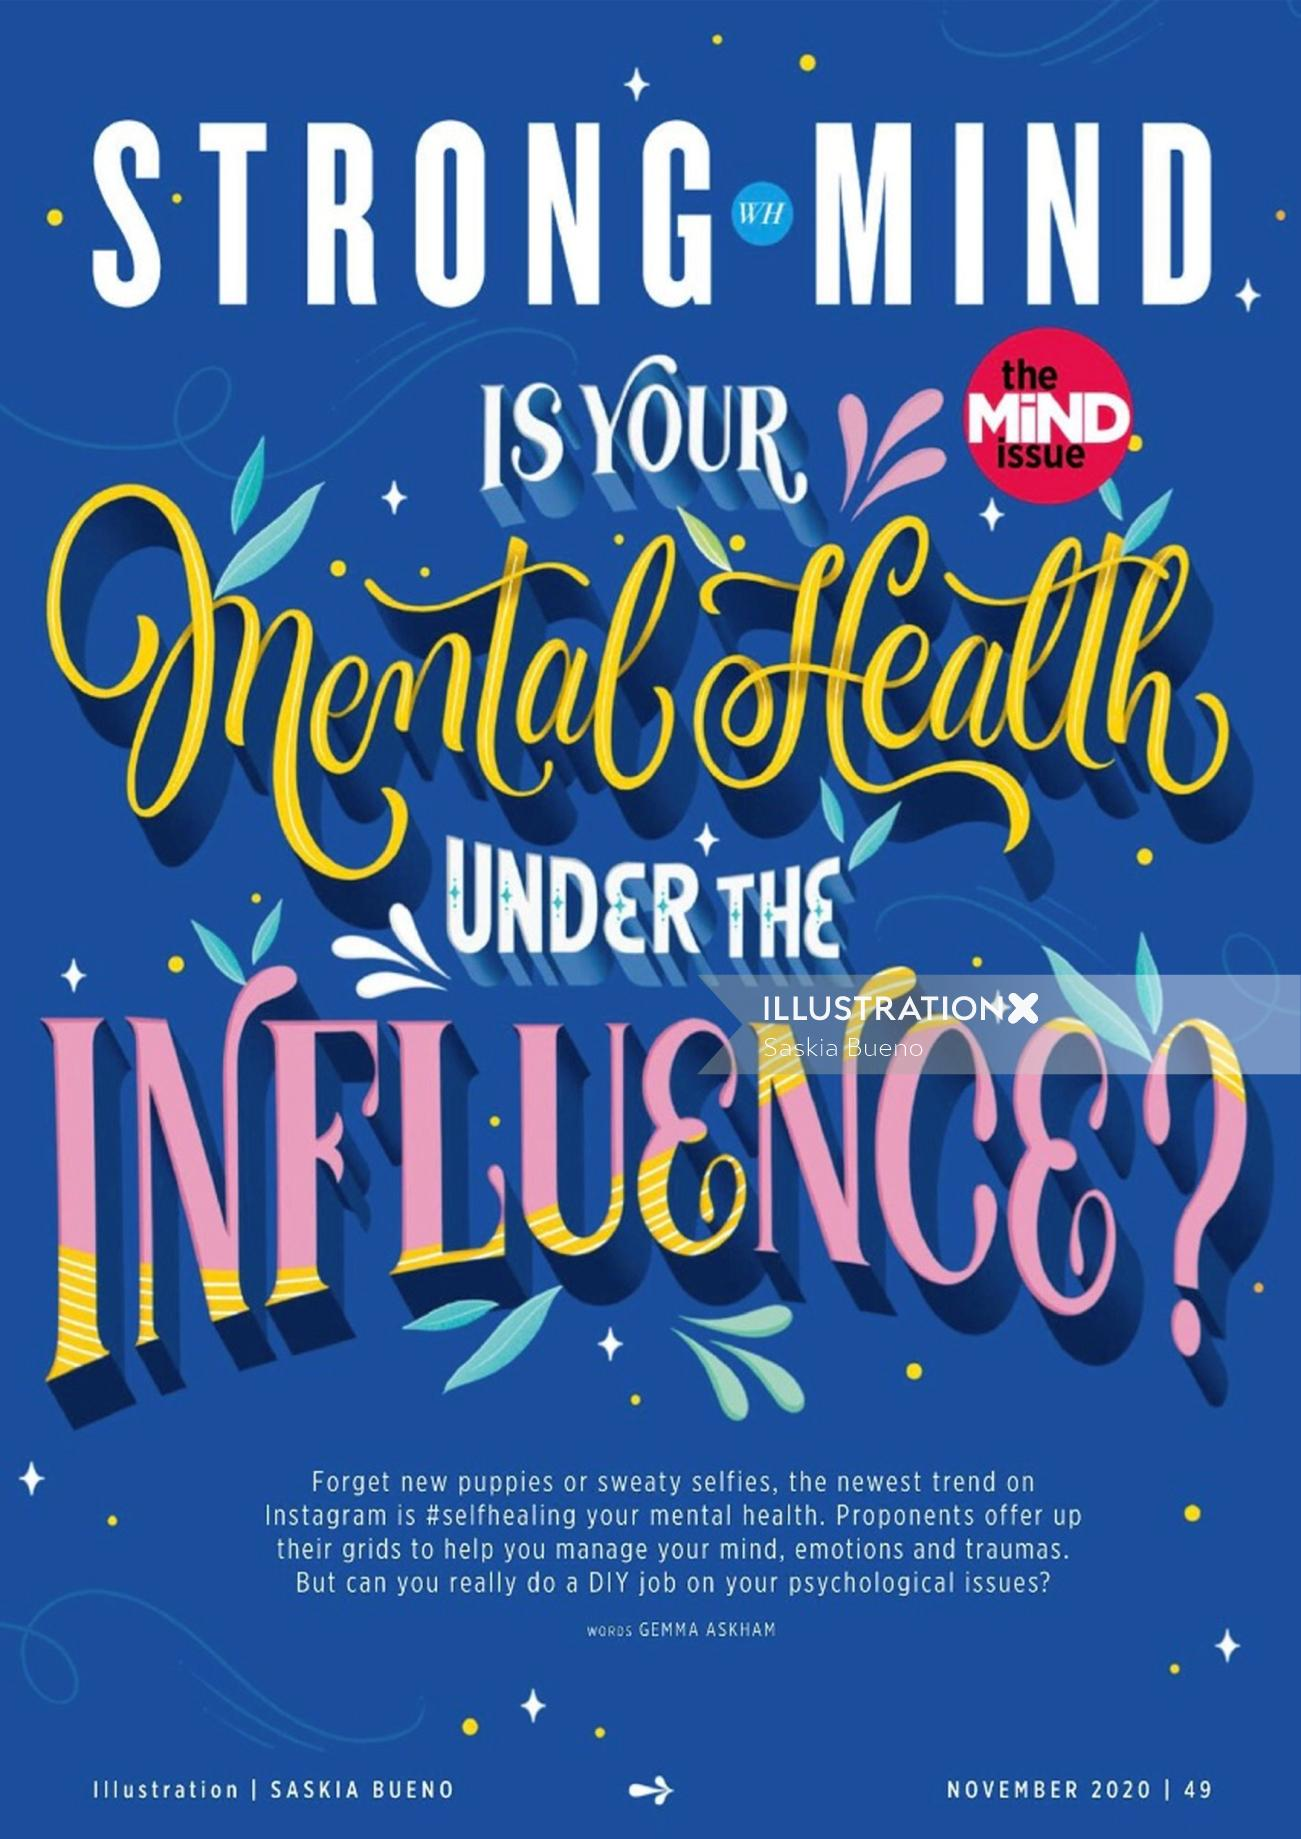 Is Your Mental Health Under the Influence